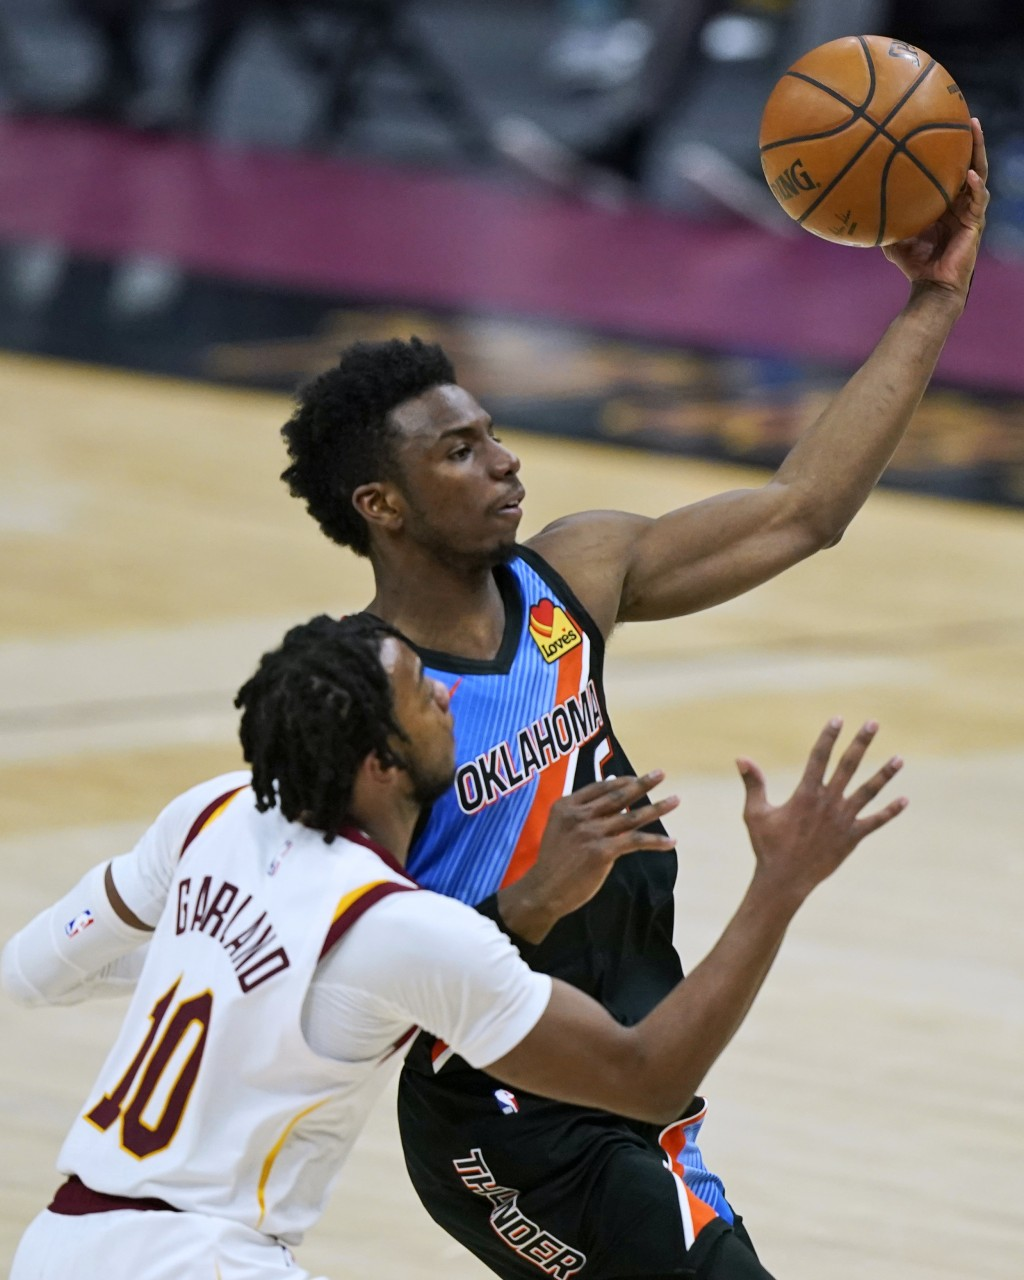 Oklahoma City Thunder's Hamidou Diallo, right, drives to the basket against Cleveland Cavaliers' Darius Garland during the second half of an NBA baske...